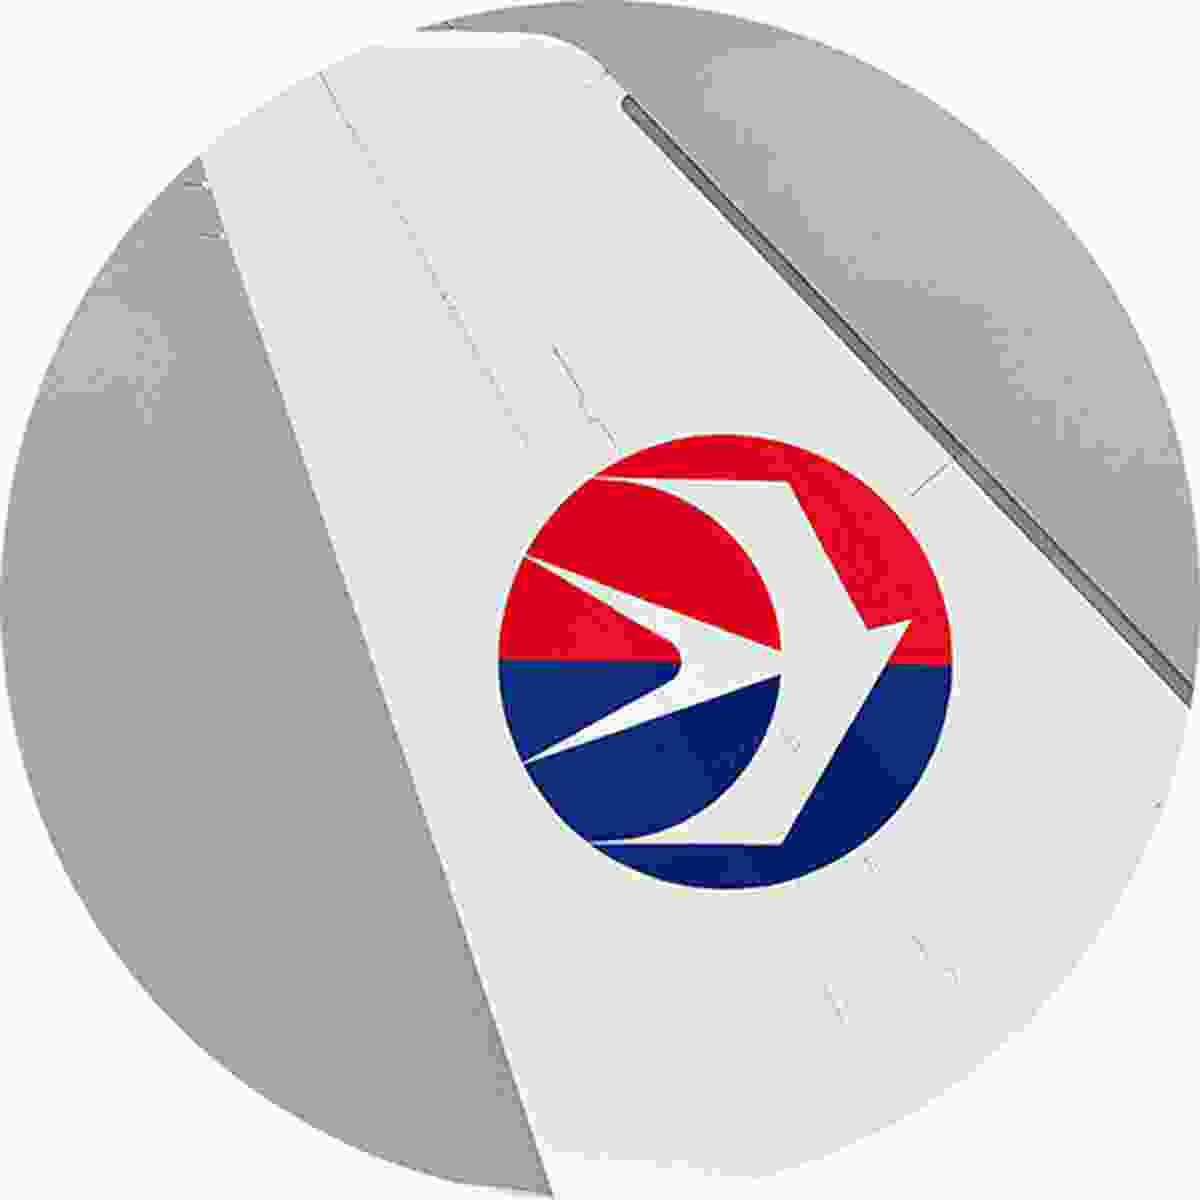 The China Eastern swallow represents hope, excellence and passion (Shutterstock)